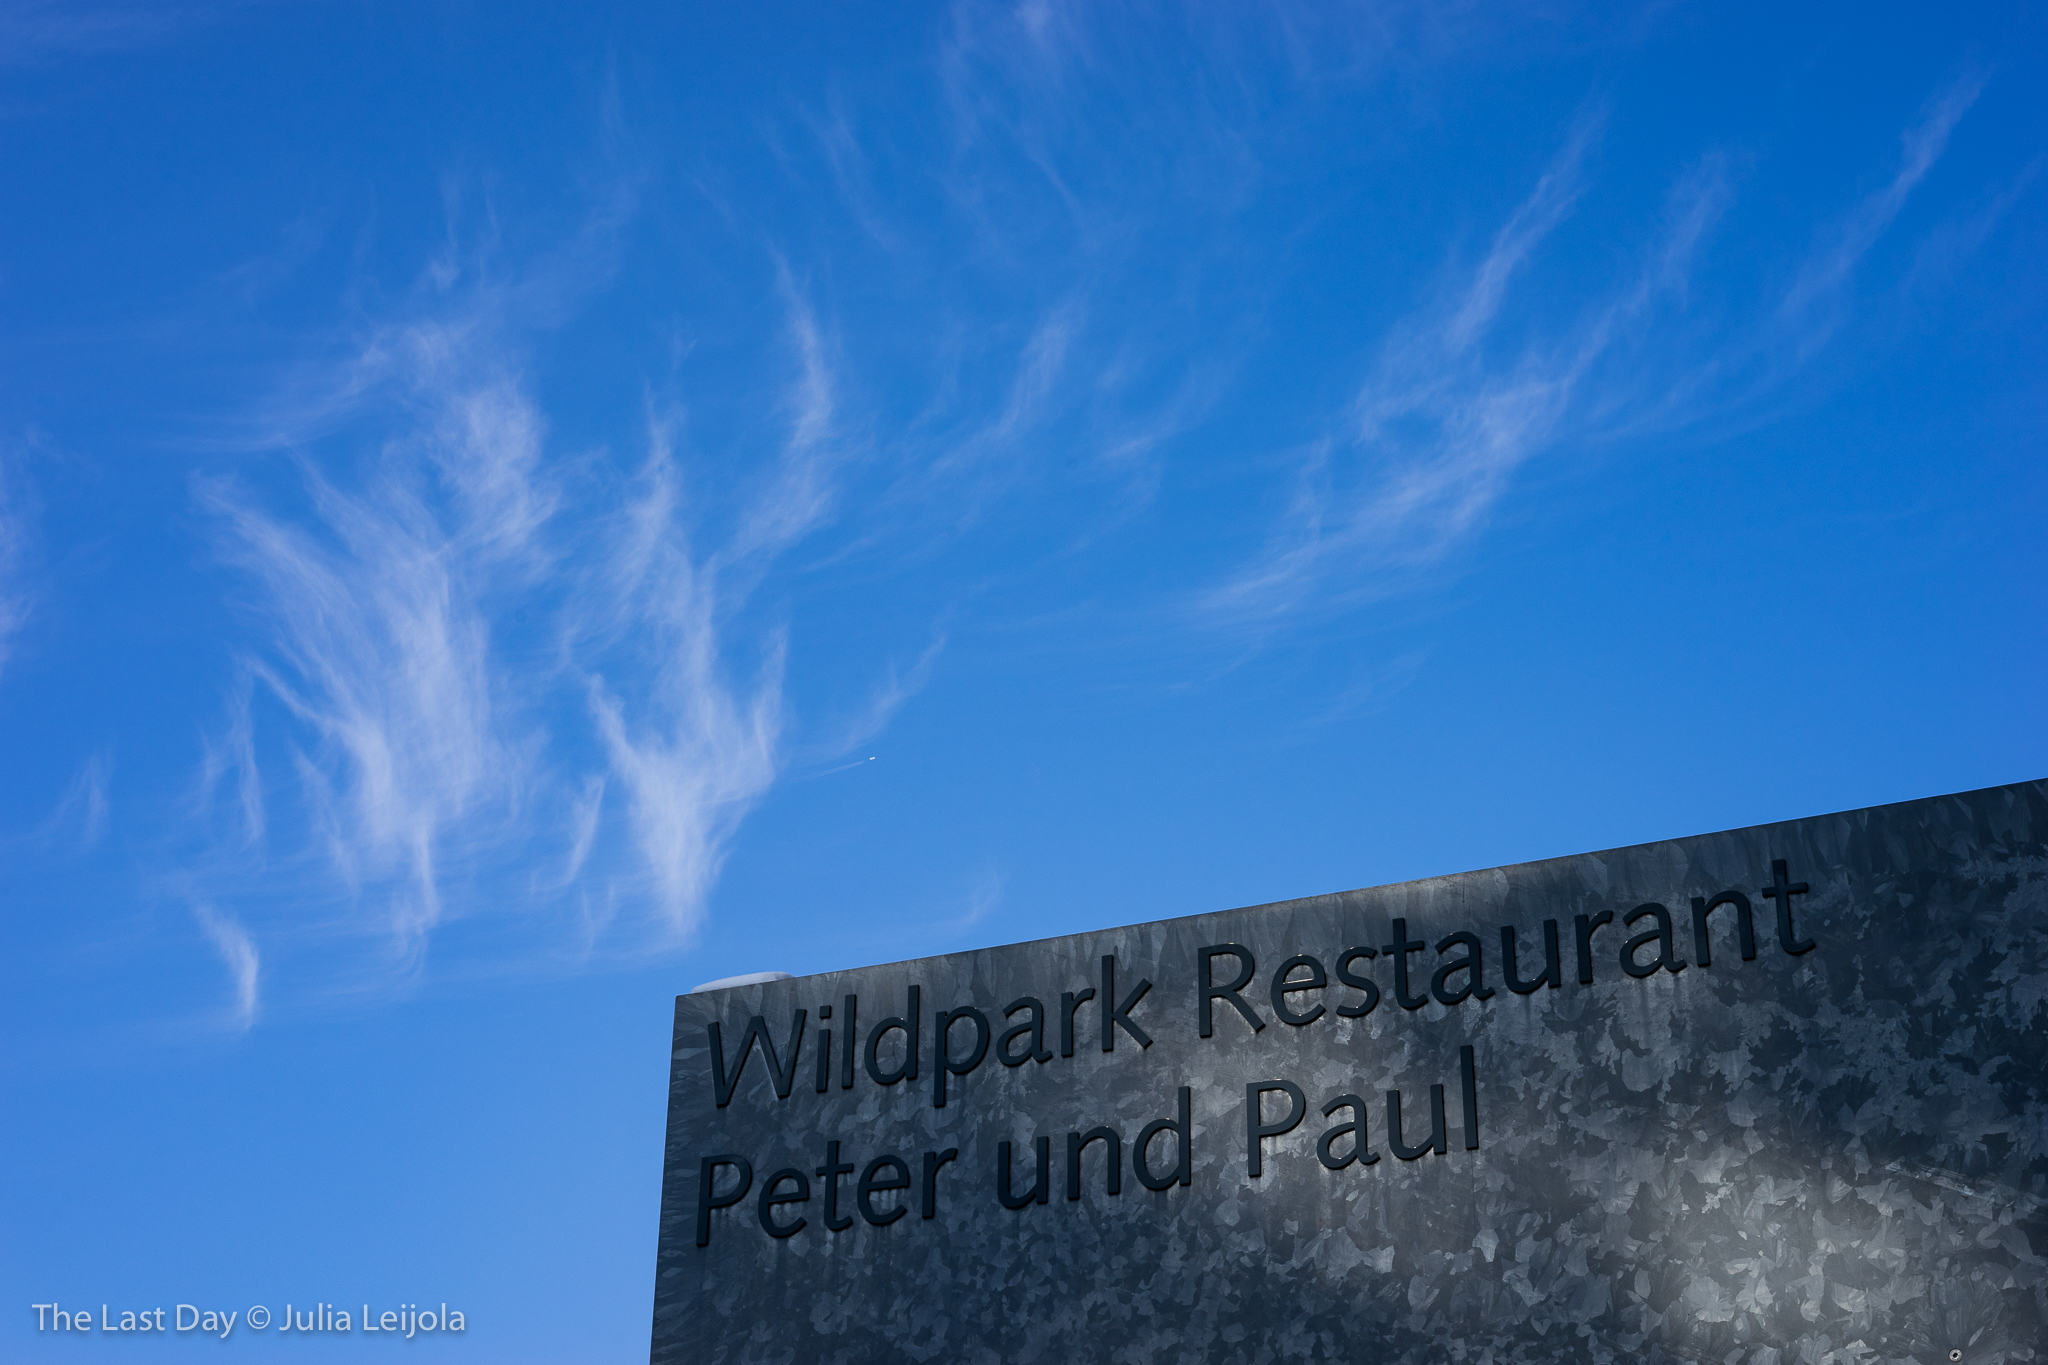 Corner of the Wildpark Restaurant and a bright blue sky with cirrus clouds and an airplane high in the sky.